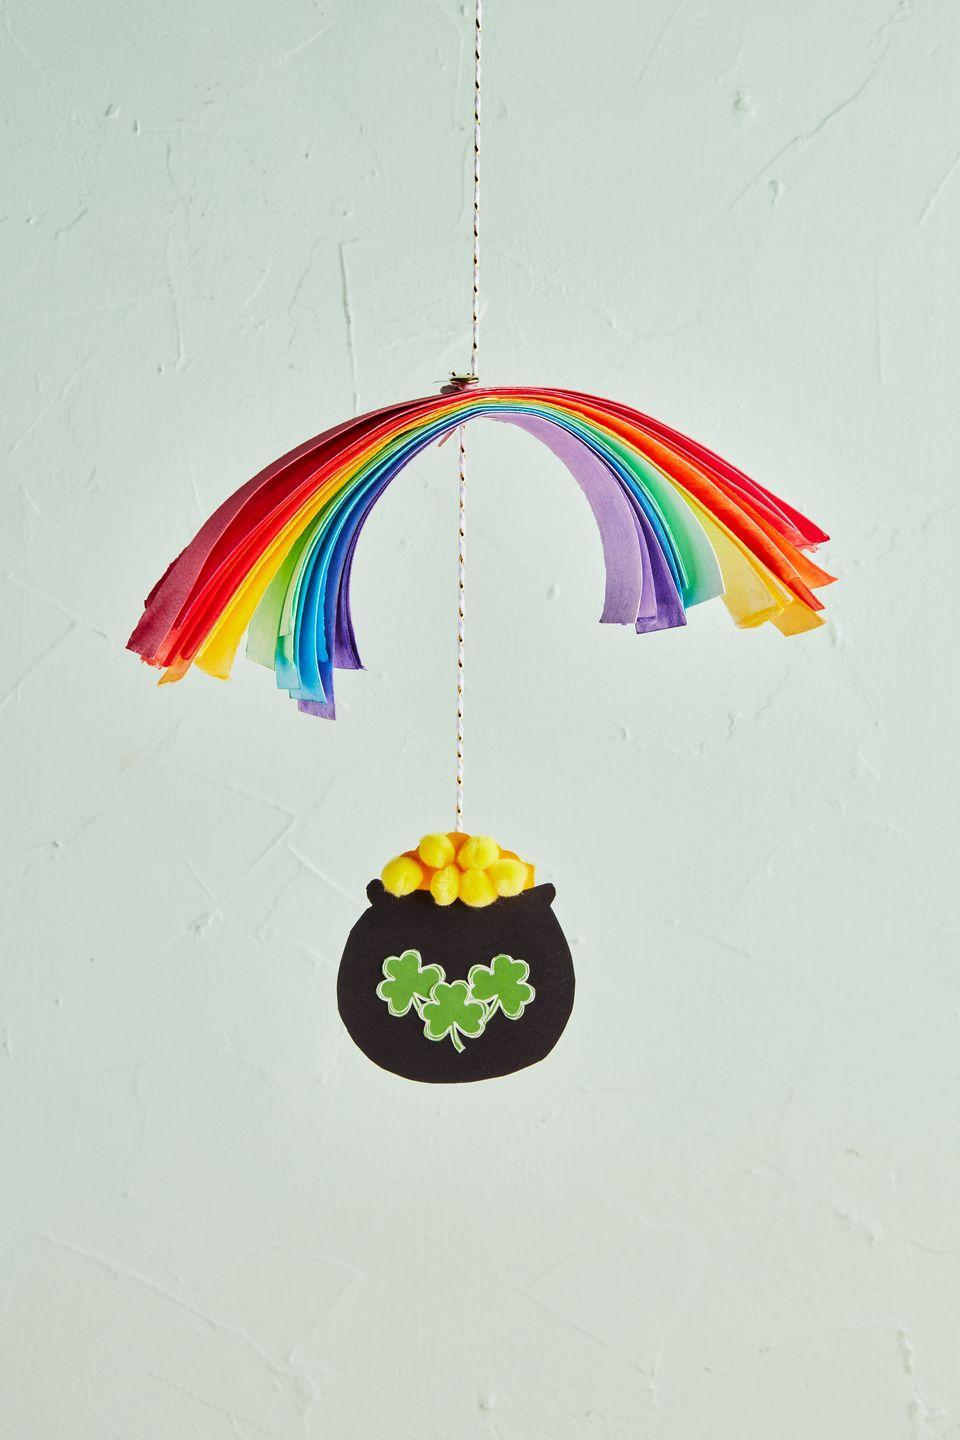 """<p>Gold, or mini yellow pom-poms? Either way, craft this DIY hanging mobile and lots of luck and riches will surely come your way!</p><p><strong>To make:</strong> Cut 1-inch-wide strips of paper from colored craft paper. Use a hole-punch to make a hole in the middle of each strip of paper; stack paper in the order of the rainbow. Thread a piece of twine through holes, knotting it just above and below the paper to hold paper in place. Fold a piece of black craft paper in half and cut out a pot shape, so that you have two identical pieces. Cut out two dome-shaped pieces of yellow craft paper and sandwich between the black pieces, gluing everything together. Glue mini yellow pom-poms to the yellow paper. Punch a hole at the top of the yellow dome, and thread twine through, securing with a knot. Cut out mini clovers from green craft paper and glue to the front and back of the pot; outline with a white pen if desired.<br><br><a class=""""link rapid-noclick-resp"""" href=""""https://www.amazon.com/Sheets-Origami-Colors-Stationery-Perfect/dp/B07P53JWP6/ref=sr_1_1?tag=syn-yahoo-20&ascsubtag=%5Bartid%7C10050.g.4036%5Bsrc%7Cyahoo-us"""" rel=""""nofollow noopener"""" target=""""_blank"""" data-ylk=""""slk:SHOP PAPER"""">SHOP PAPER</a><br></p>"""